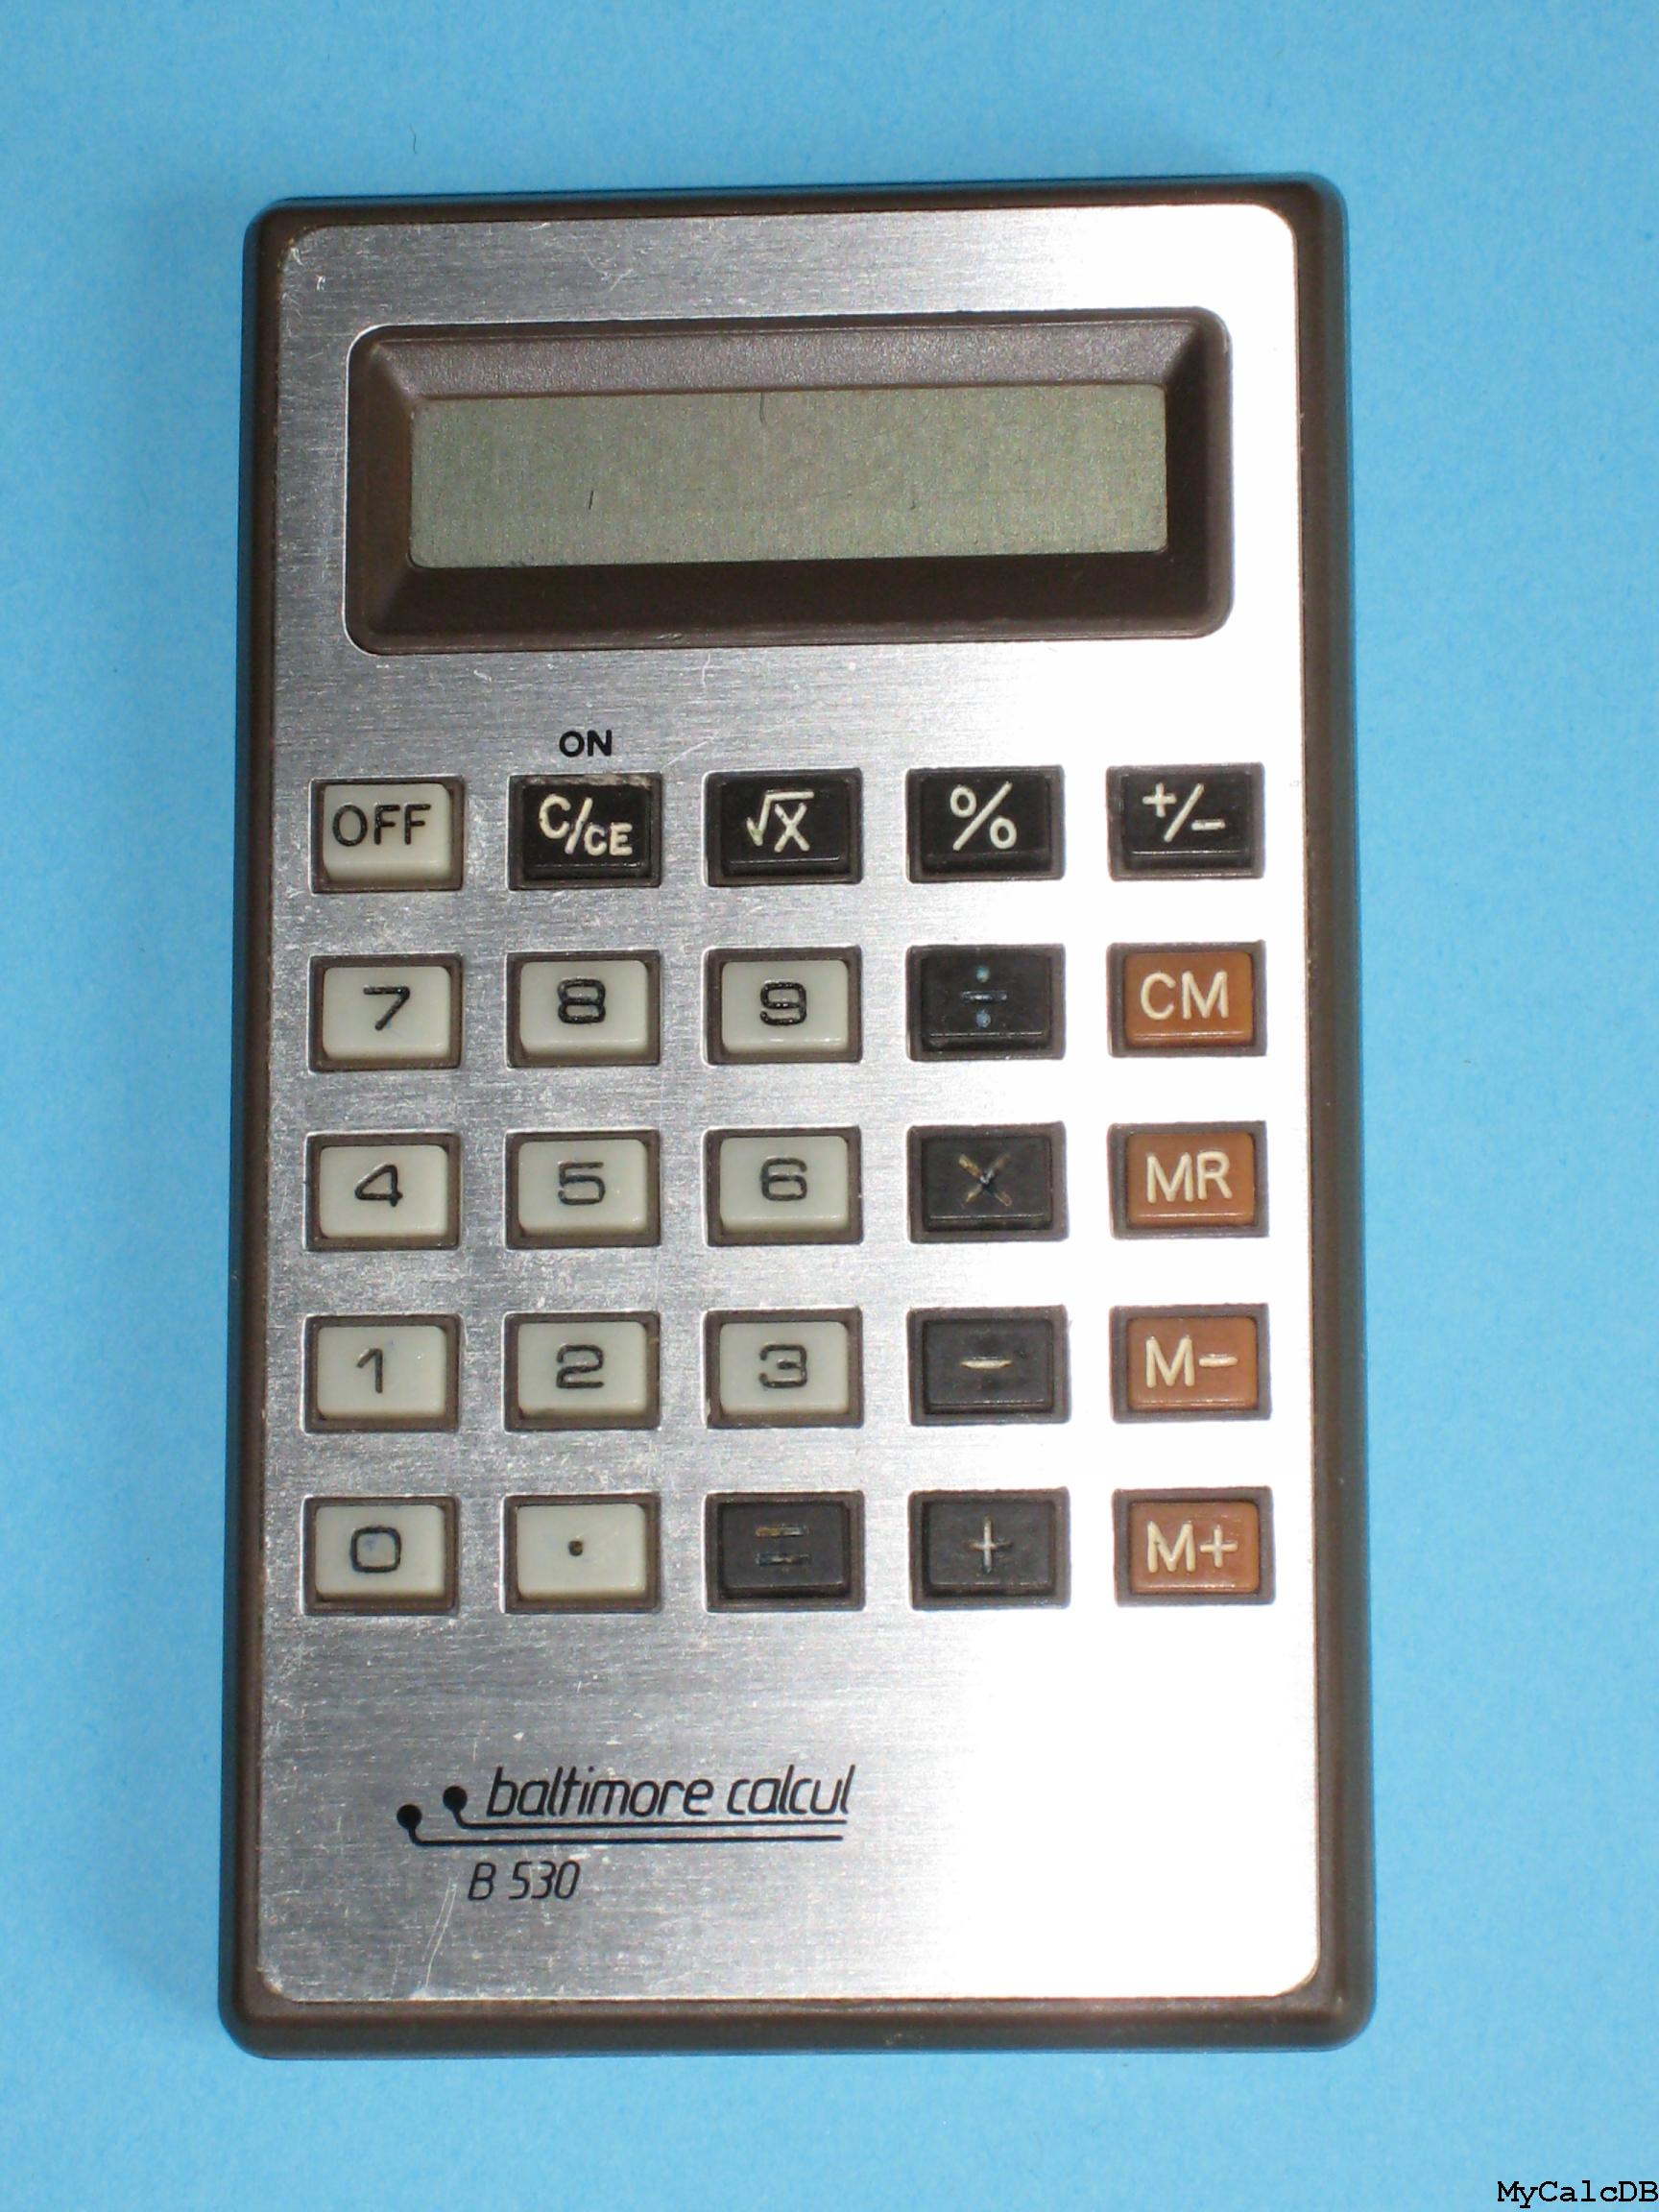 Baltimore Calcul B530